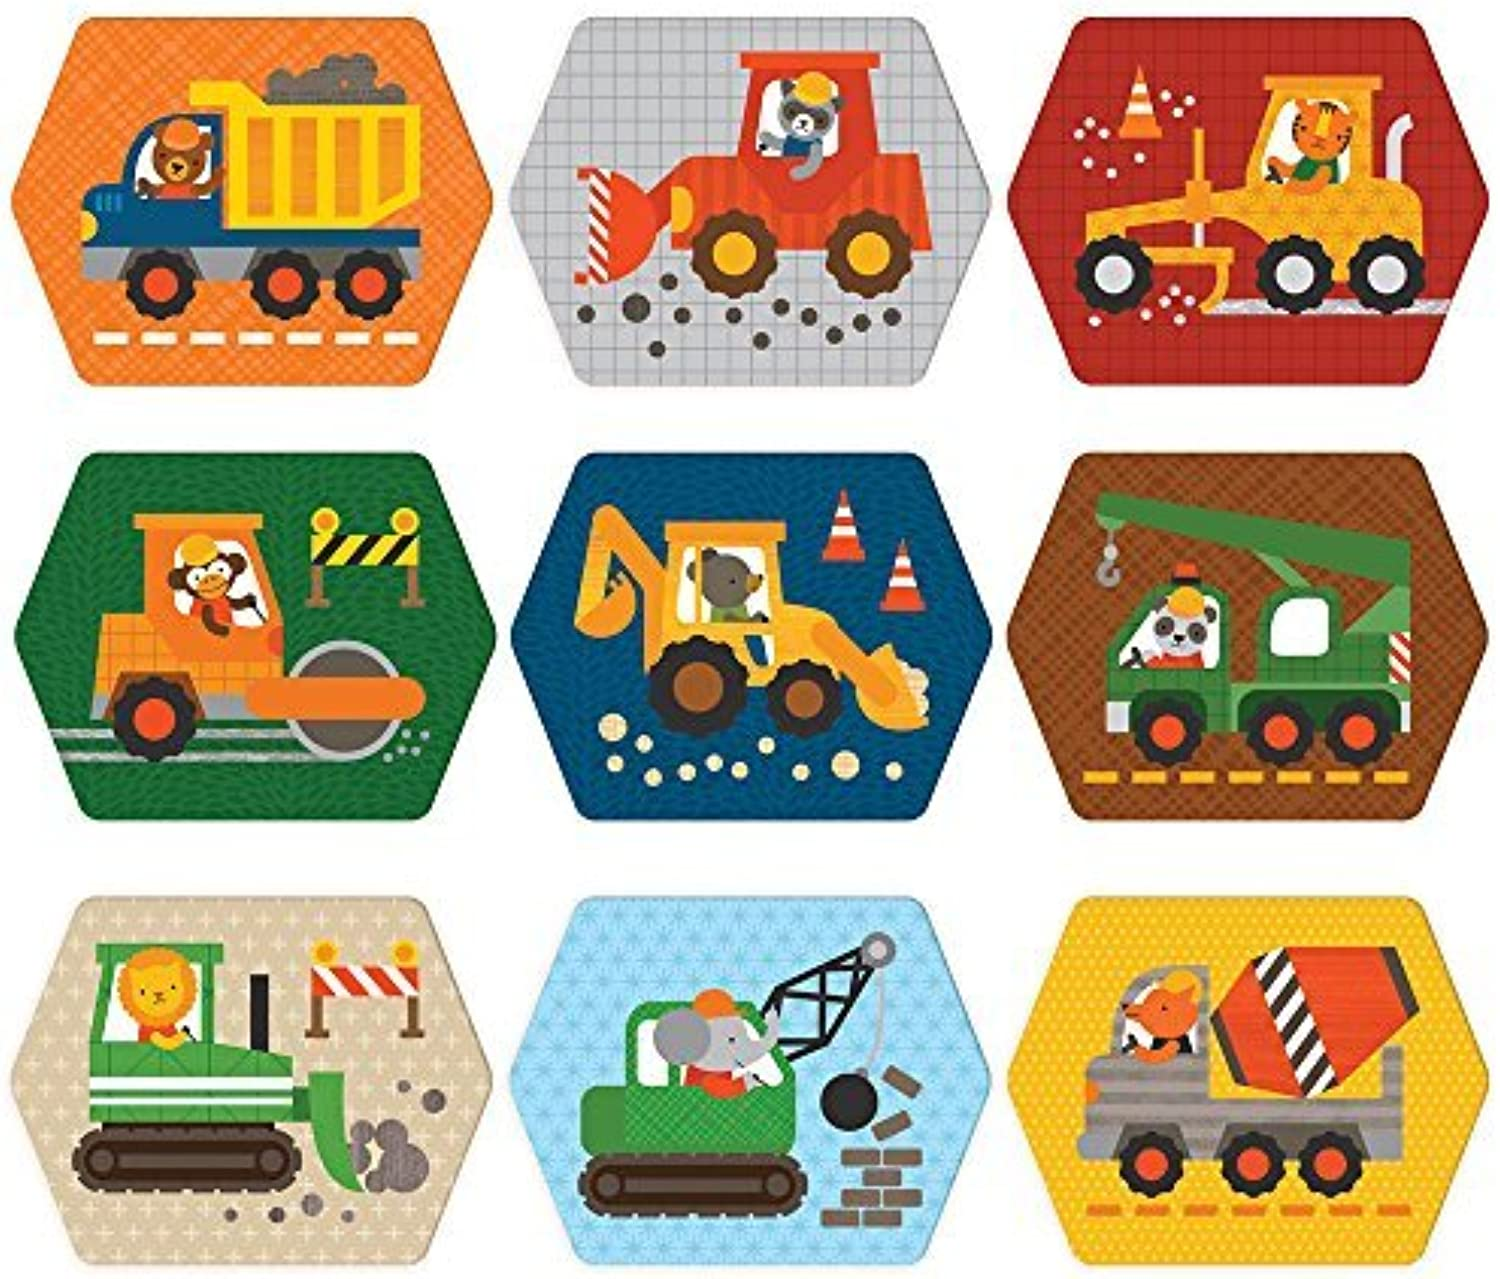 Construction Memory Game by Petit Collage